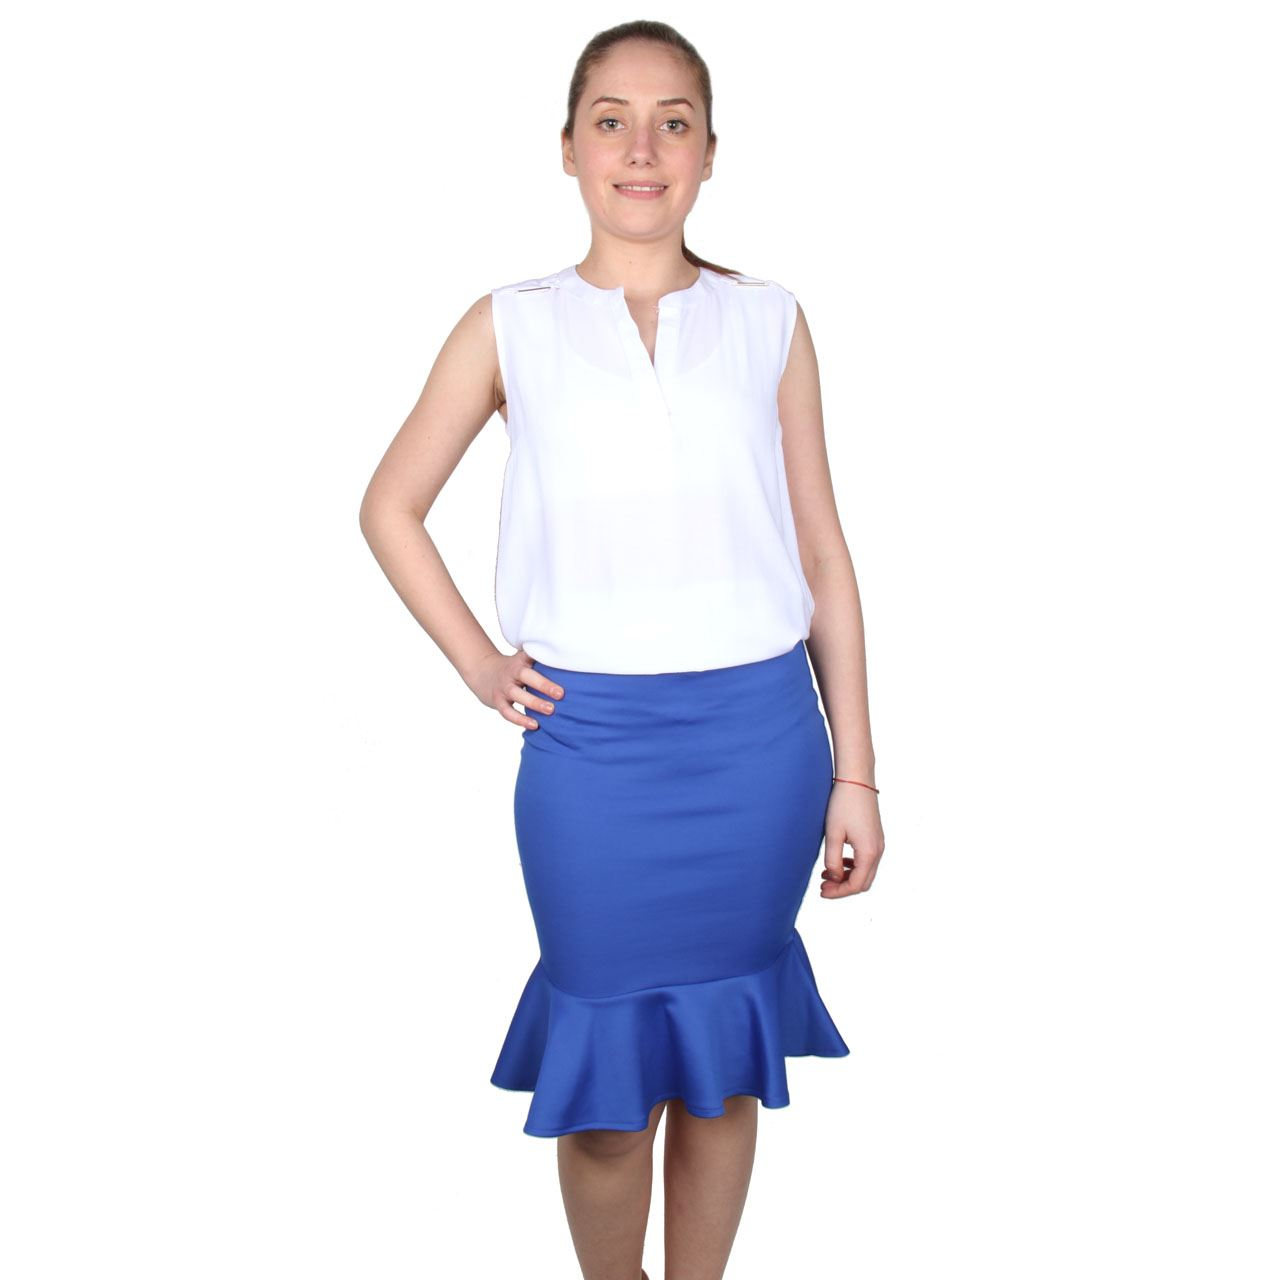 Our pencil skirts are available in midi and mini lengths to fit and flatter your frame. Try a Red High-Waisted Pencil Skirt to show off your confidence, or keep your look more traditional with a plaid or tweed skirt from Express or shopnow-bqimqrqk.tk